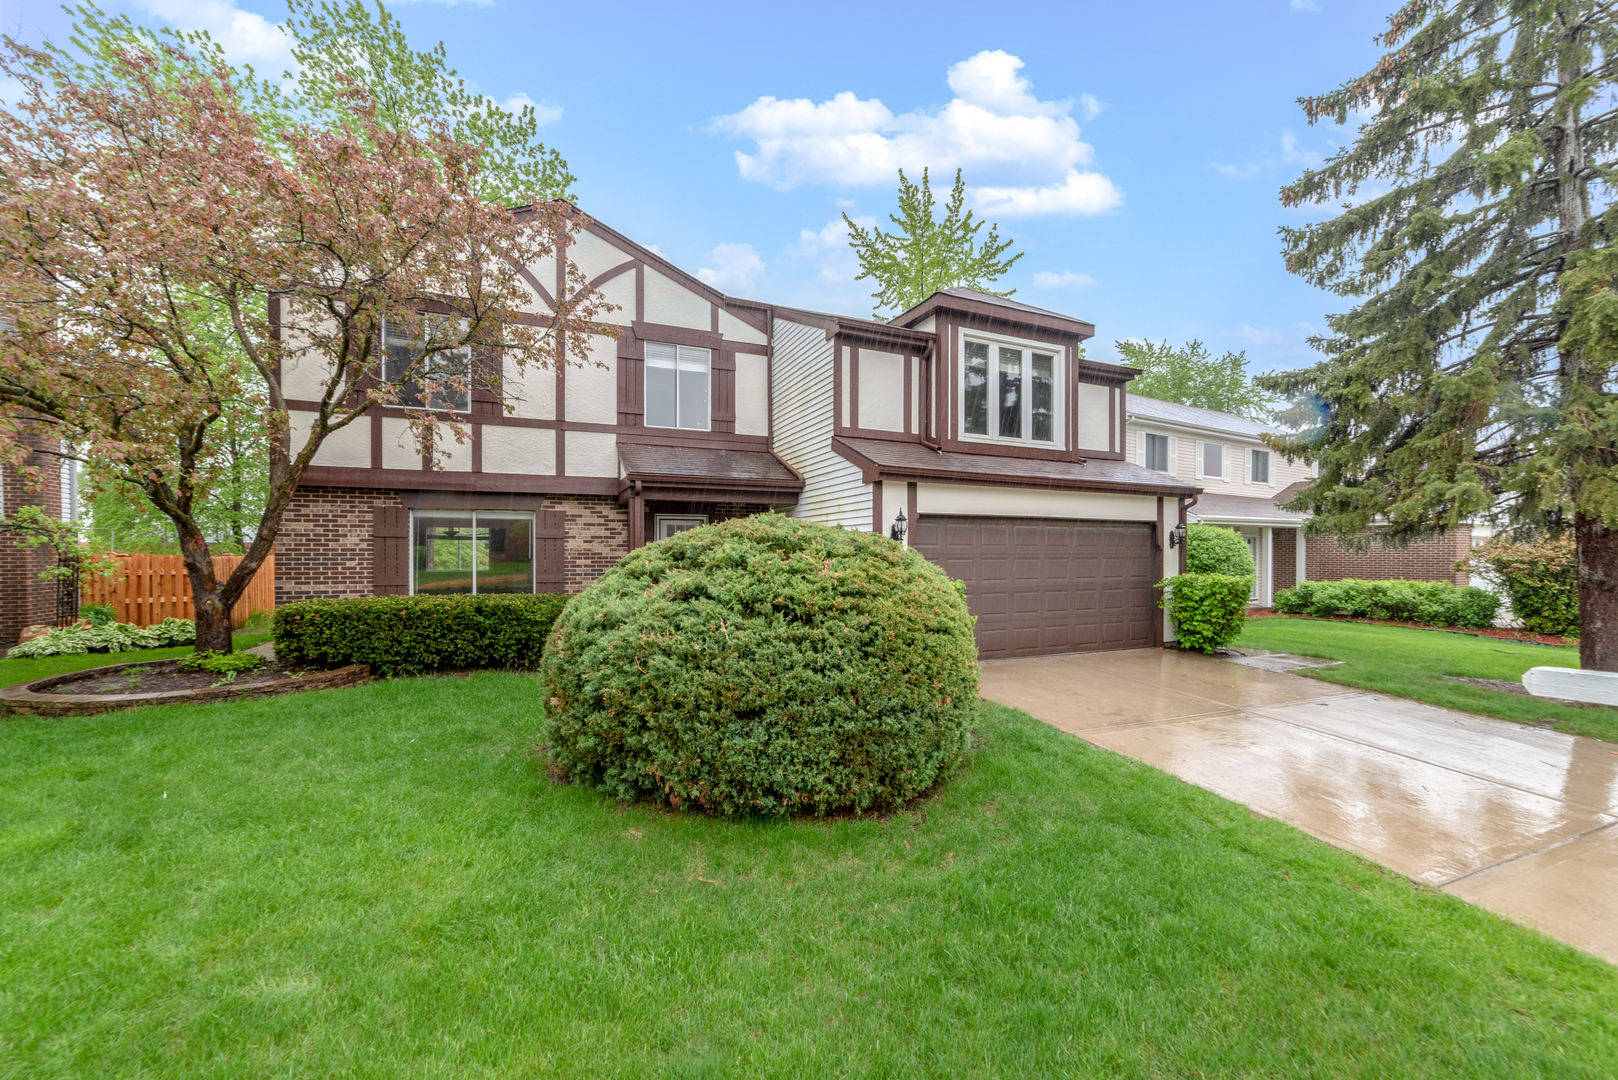 207 HORATIO Boulevard, Buffalo Grove in Lake County, IL 60089 Home for Sale